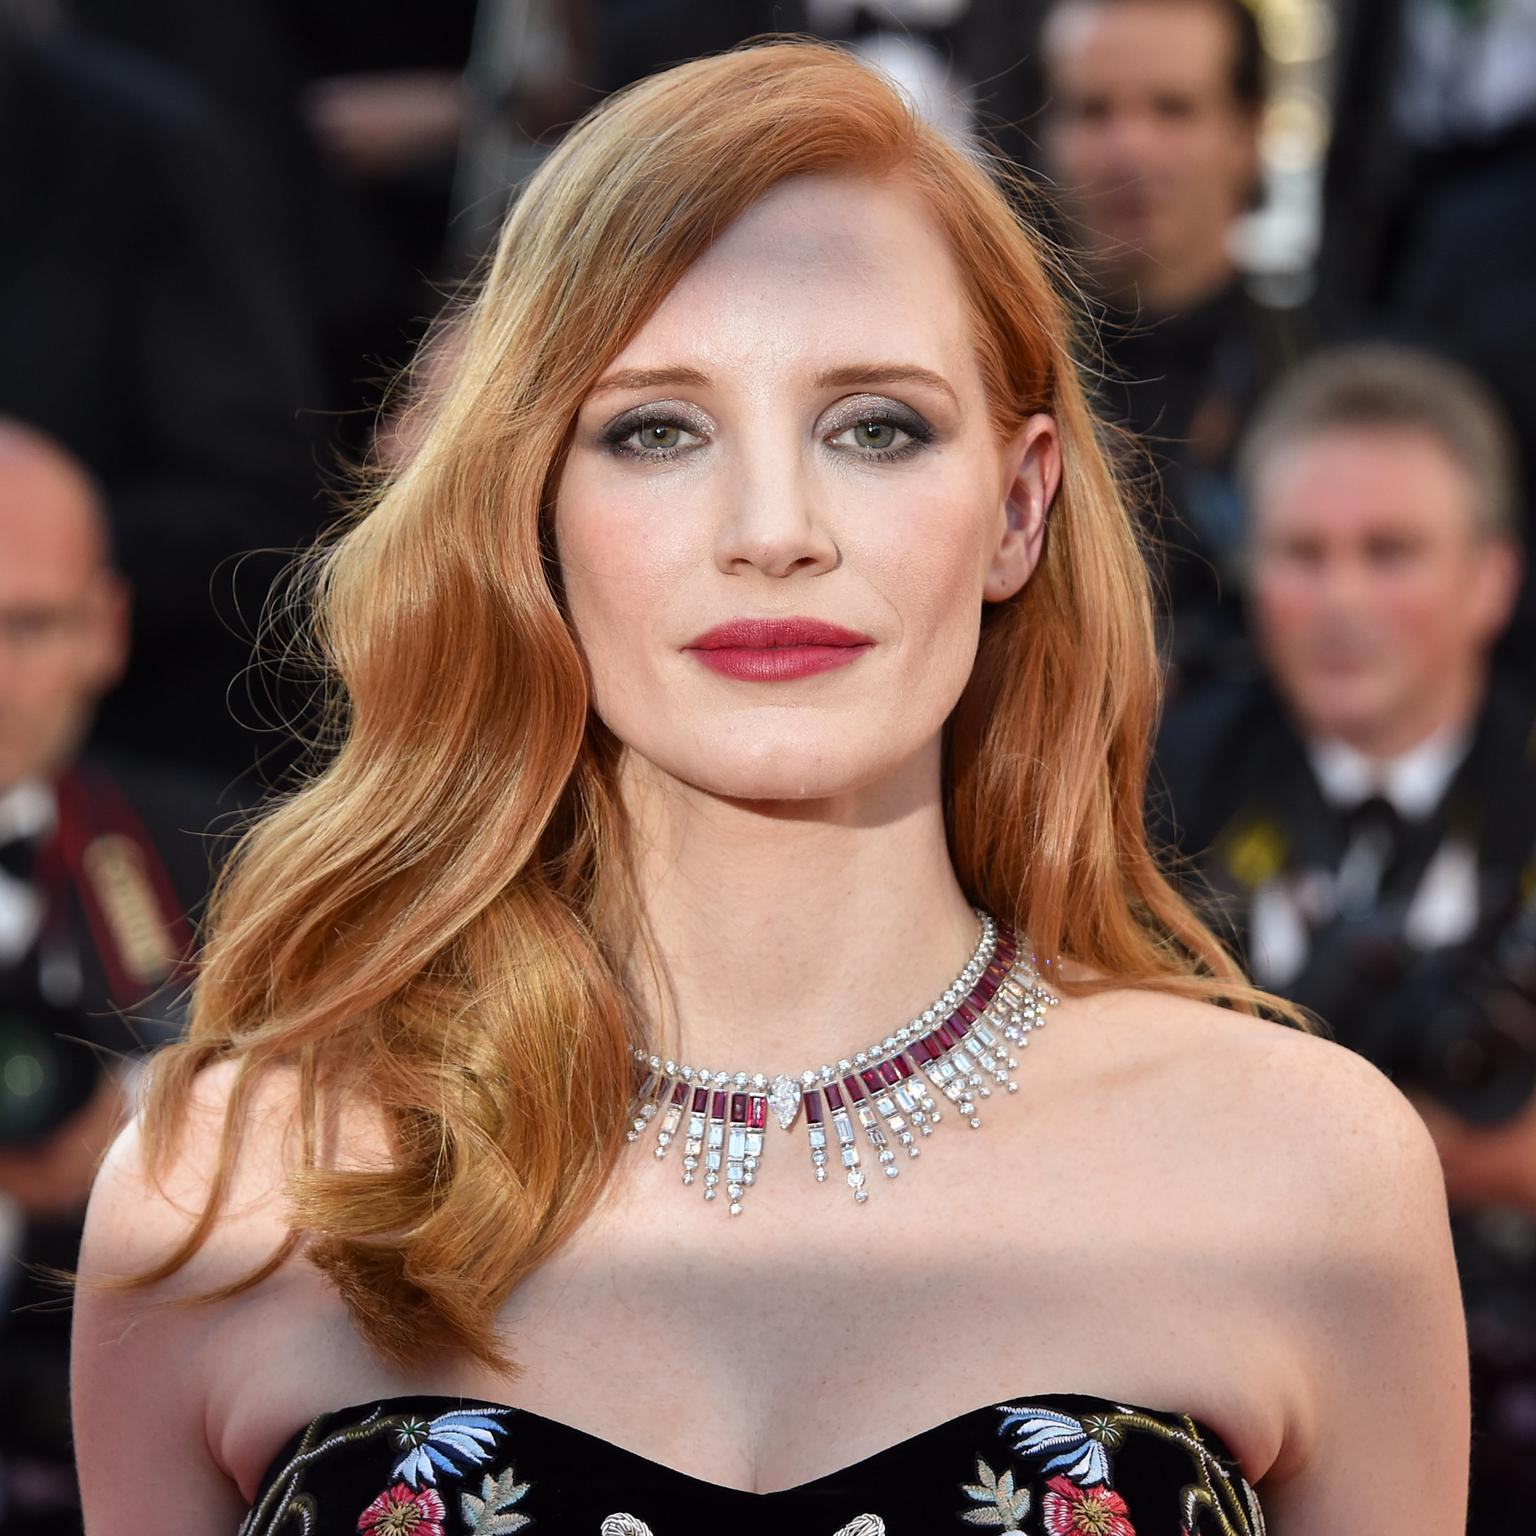 Jessica Chastain in Piaget high jewellery necklace at the Cannes Film Festival 2017